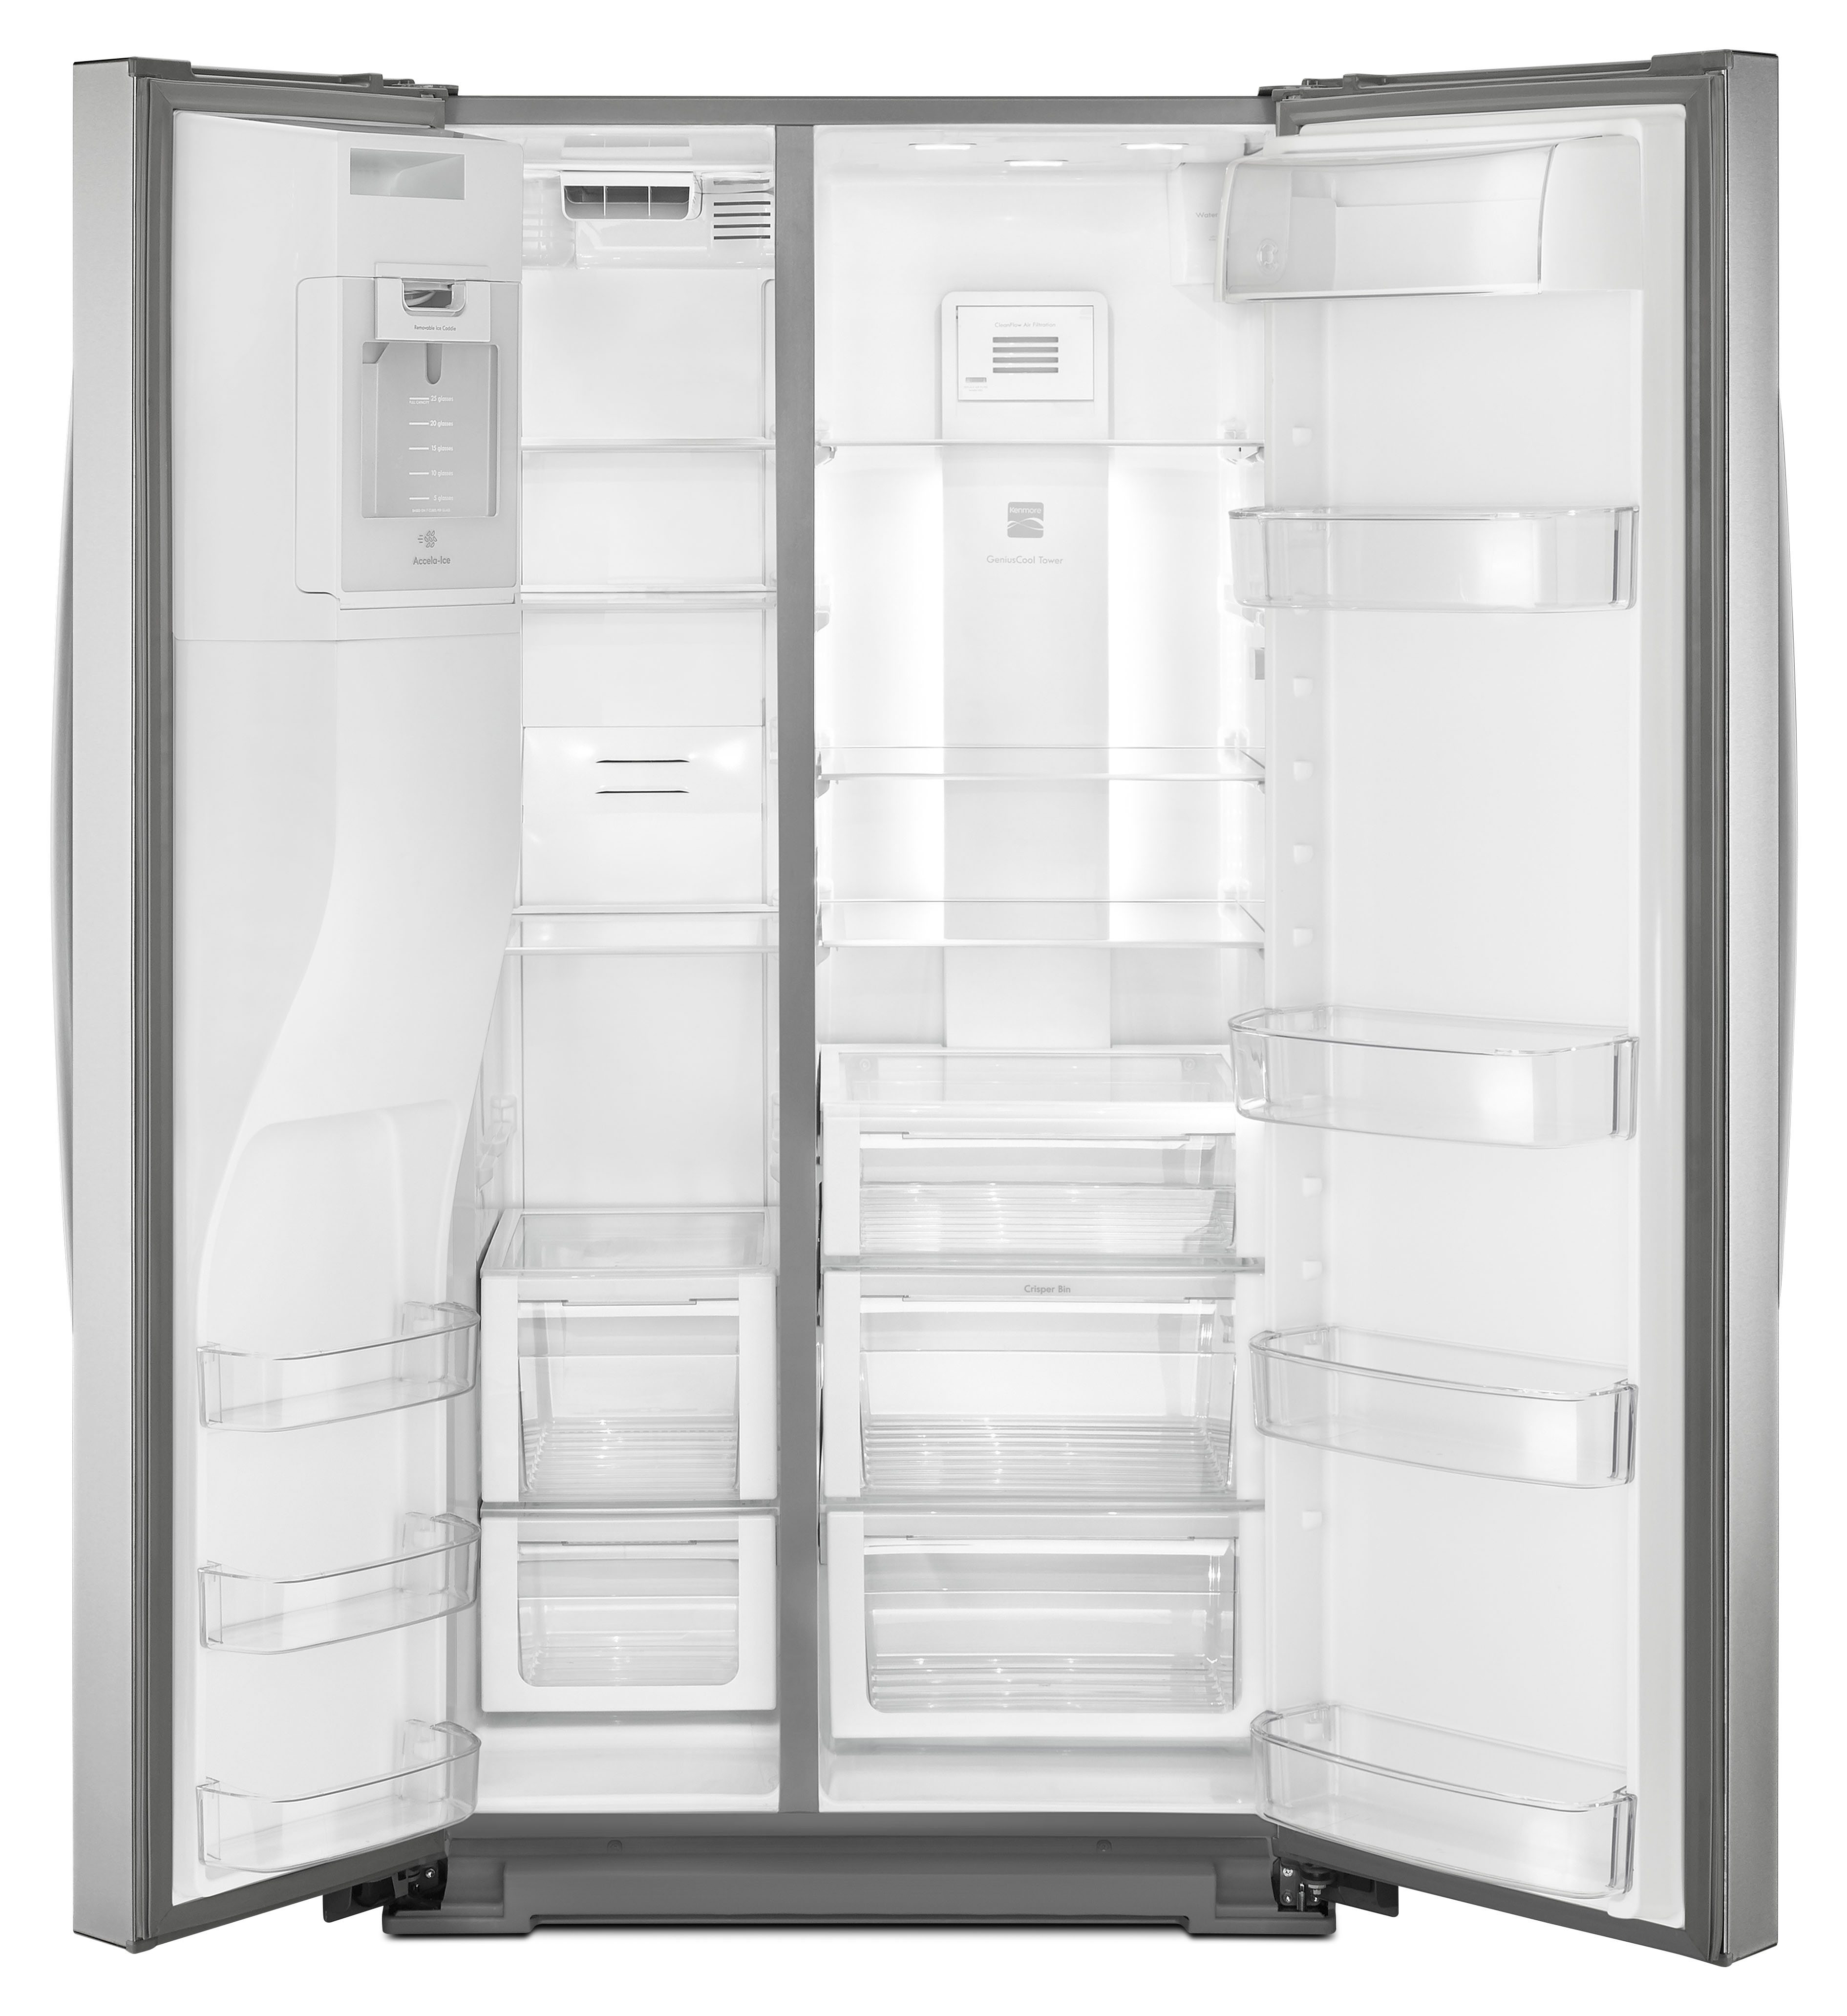 Kenmore 51763 25 cu. ft. Side-by-Side Refrigerator - Stainless Steel